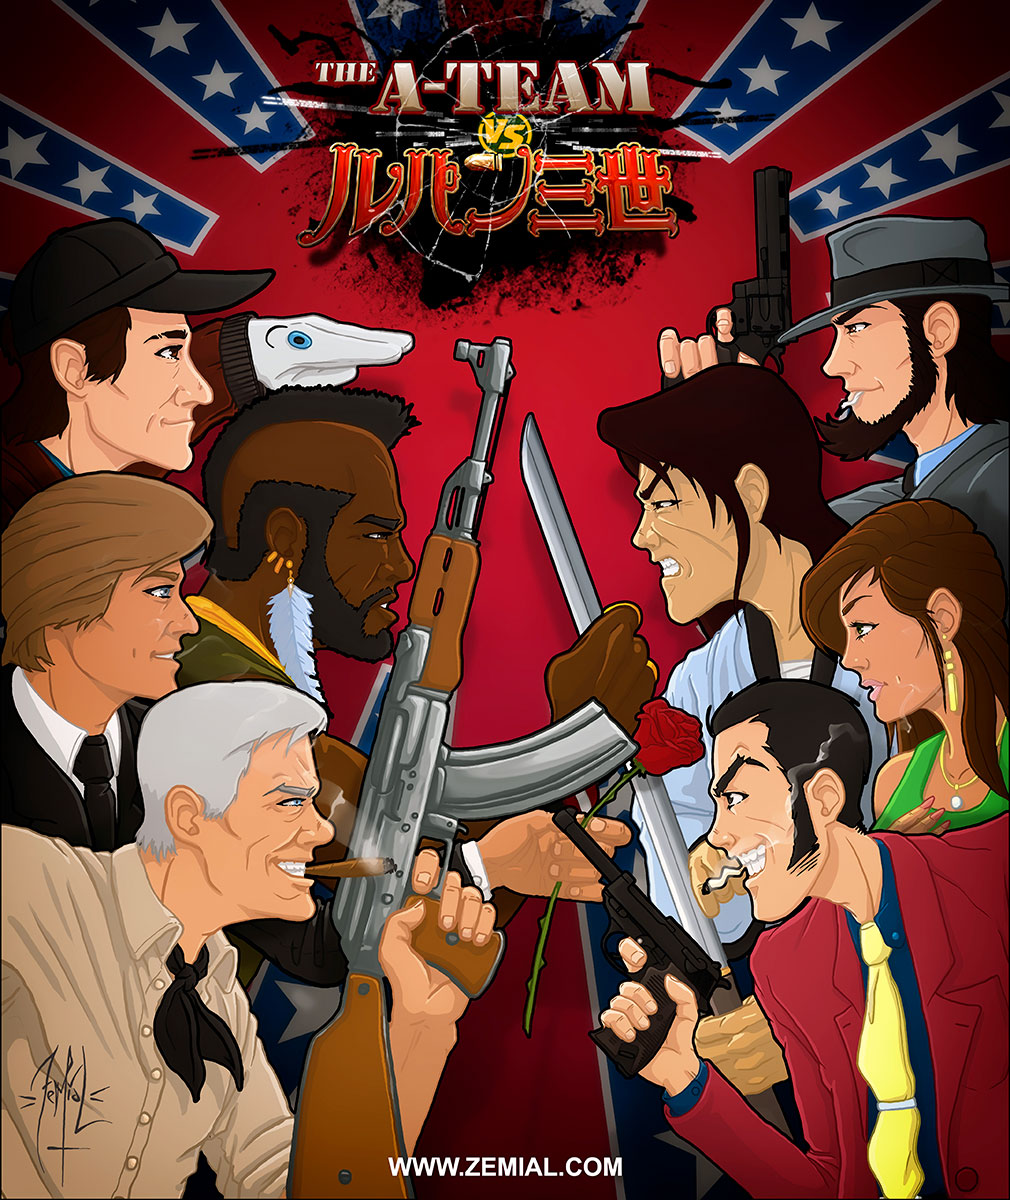 The A-Team vs Lupin the Third